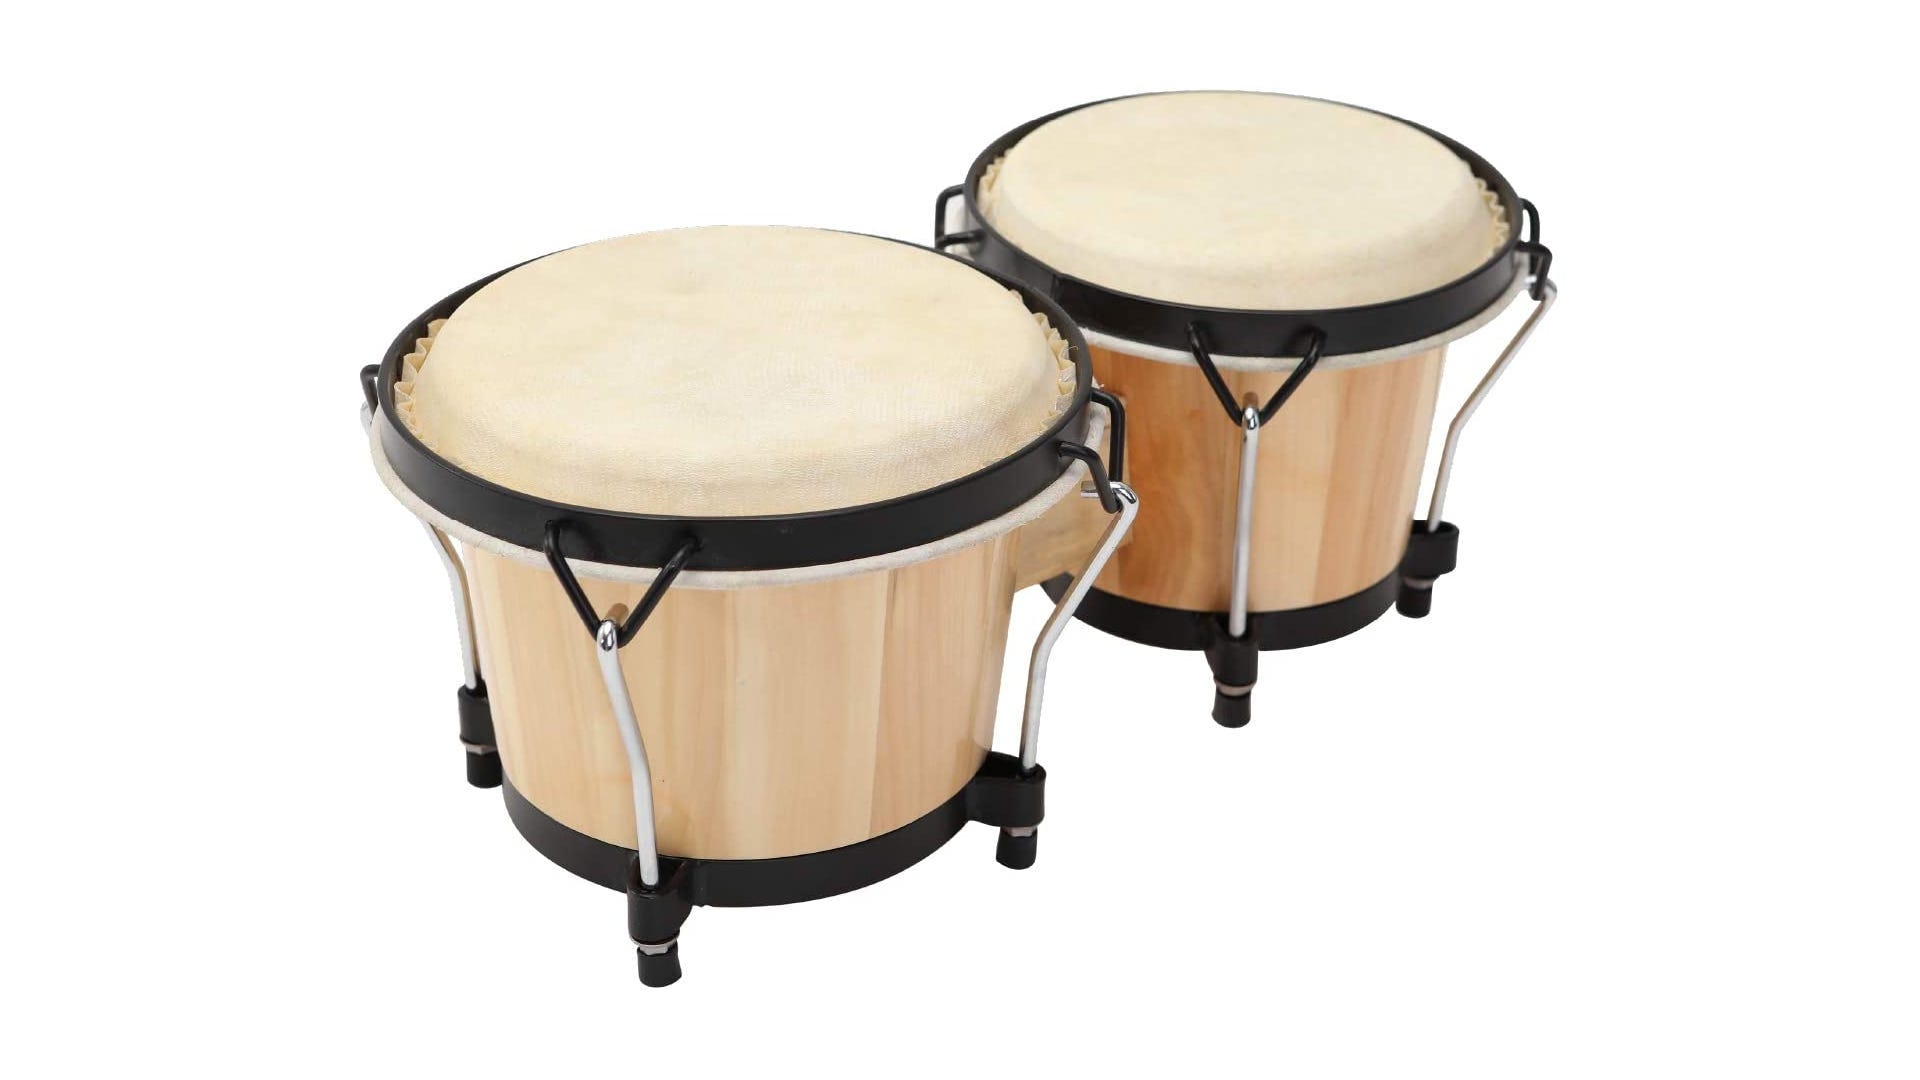 A wood MUSICUBE Bongo drum set with black trim is displayed against a white background.